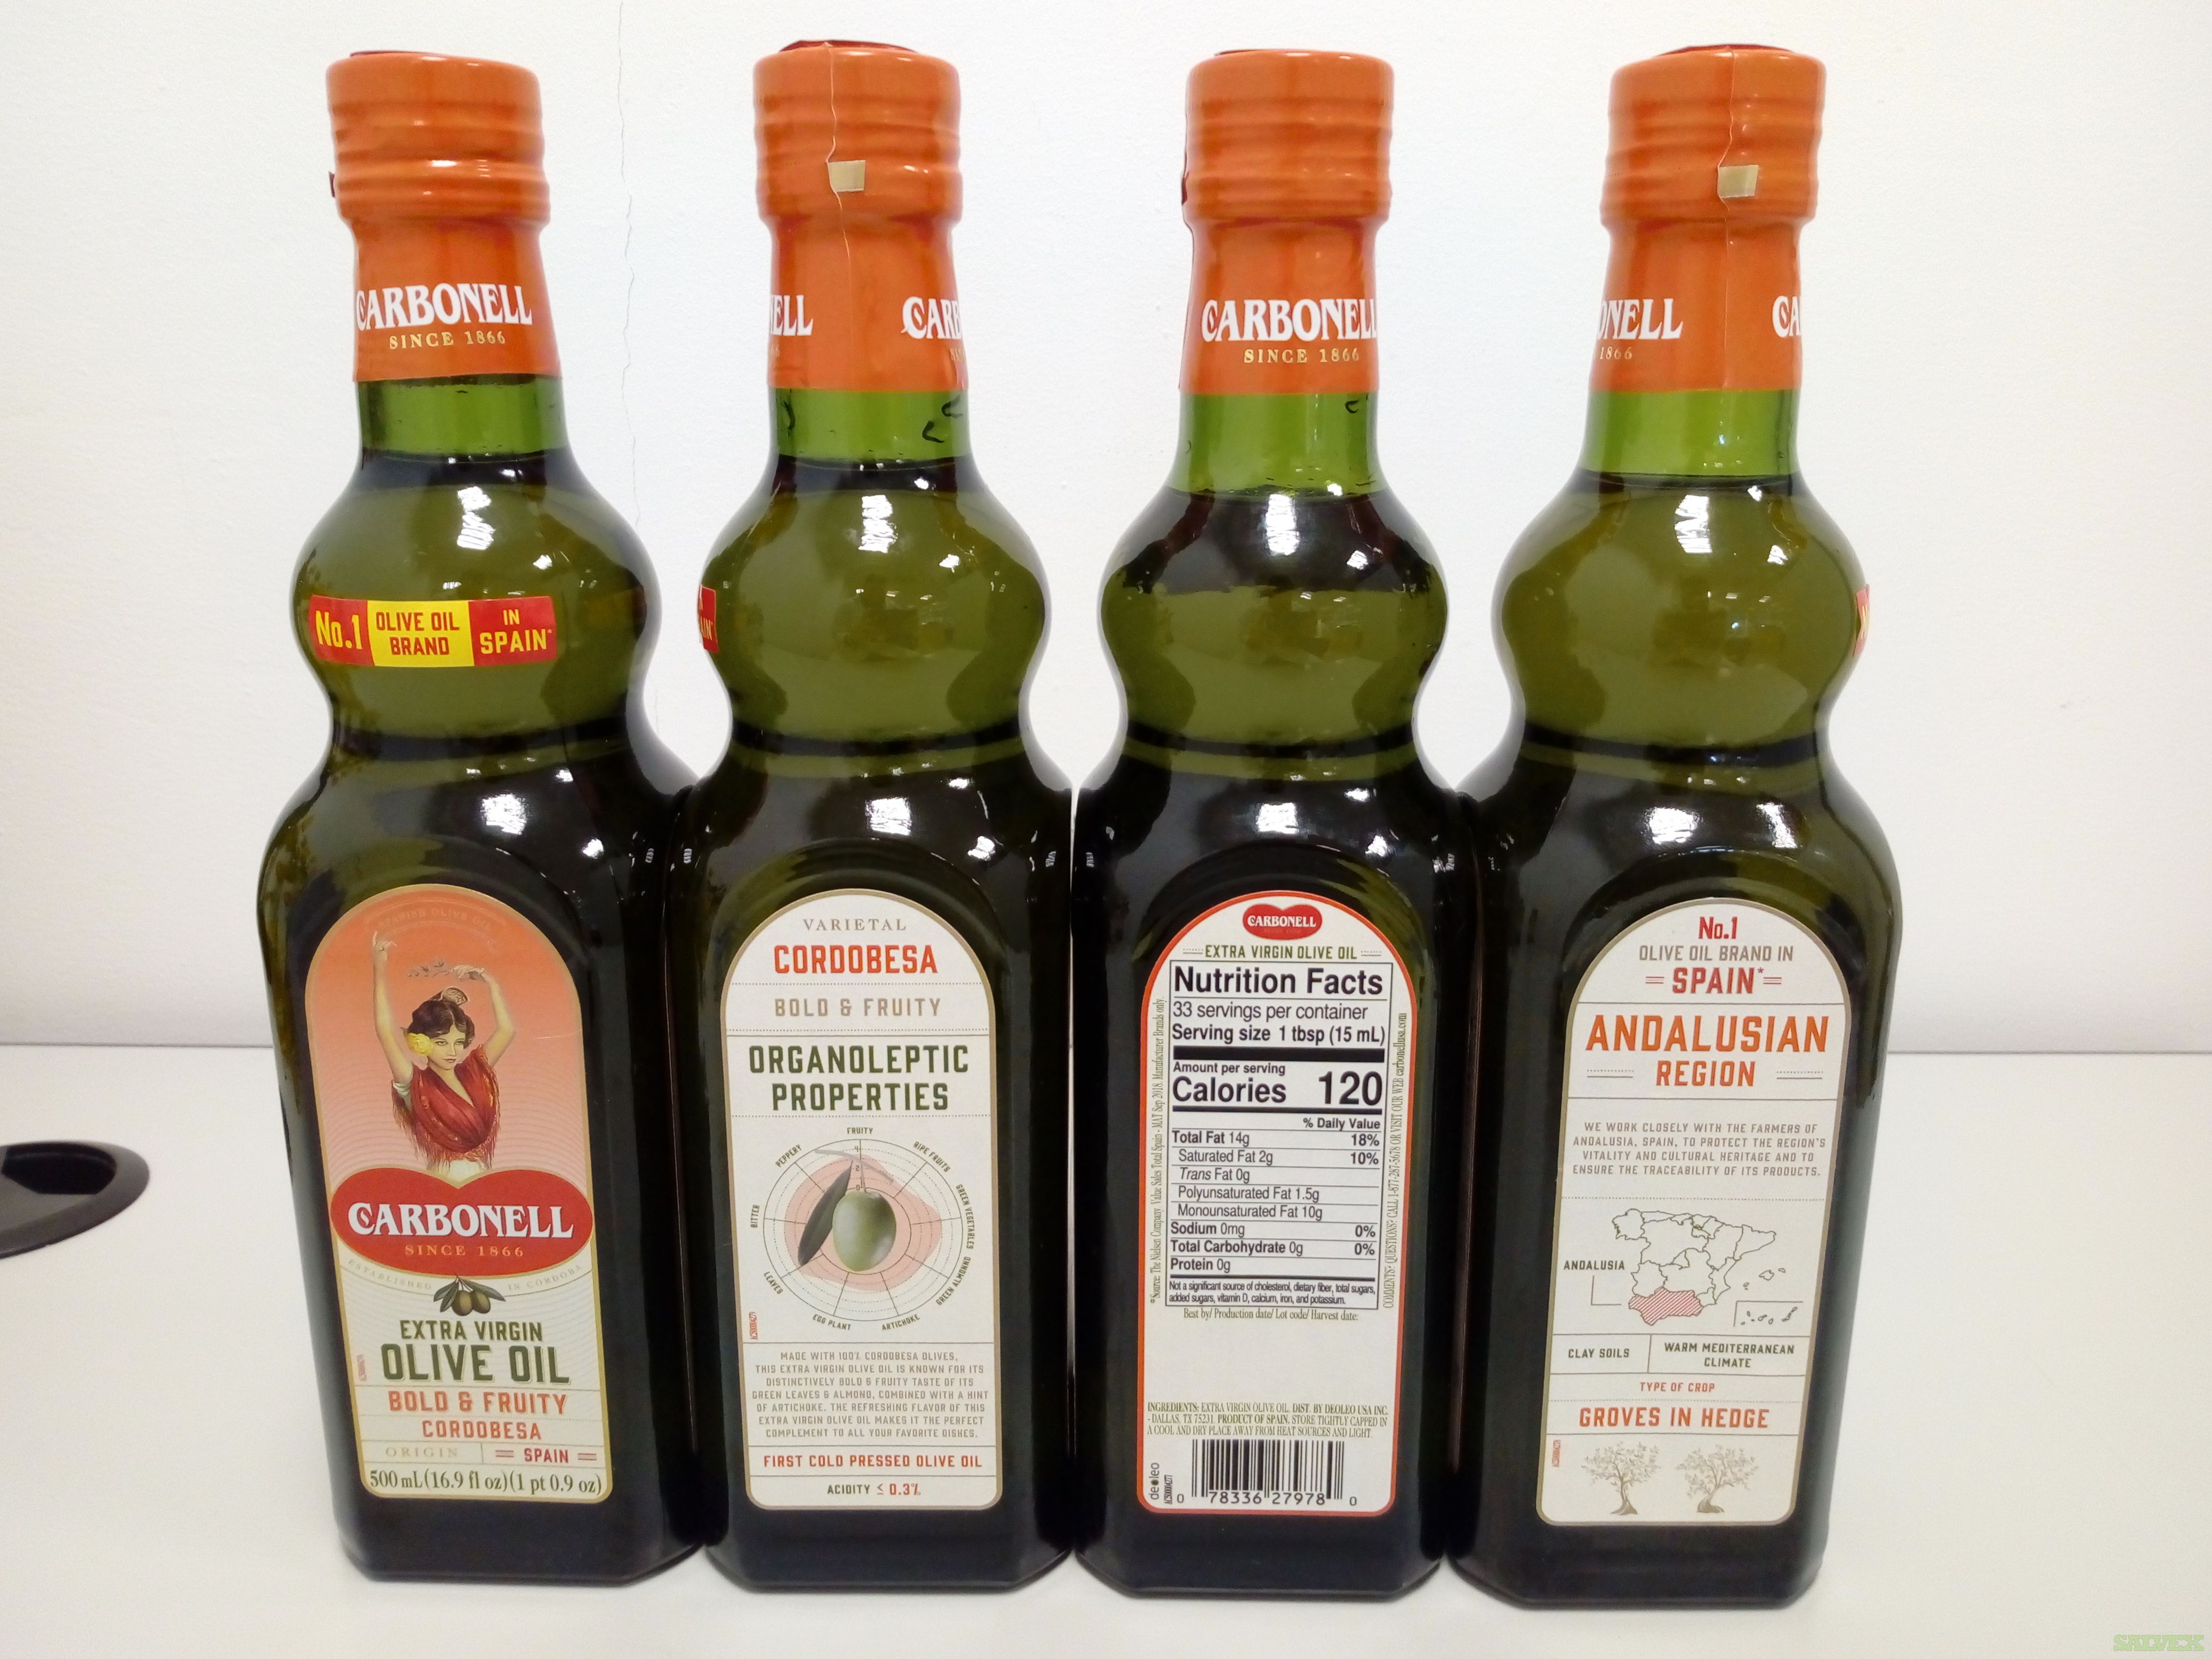 Bertolli, Carapelli and Carbonell Olive Oil